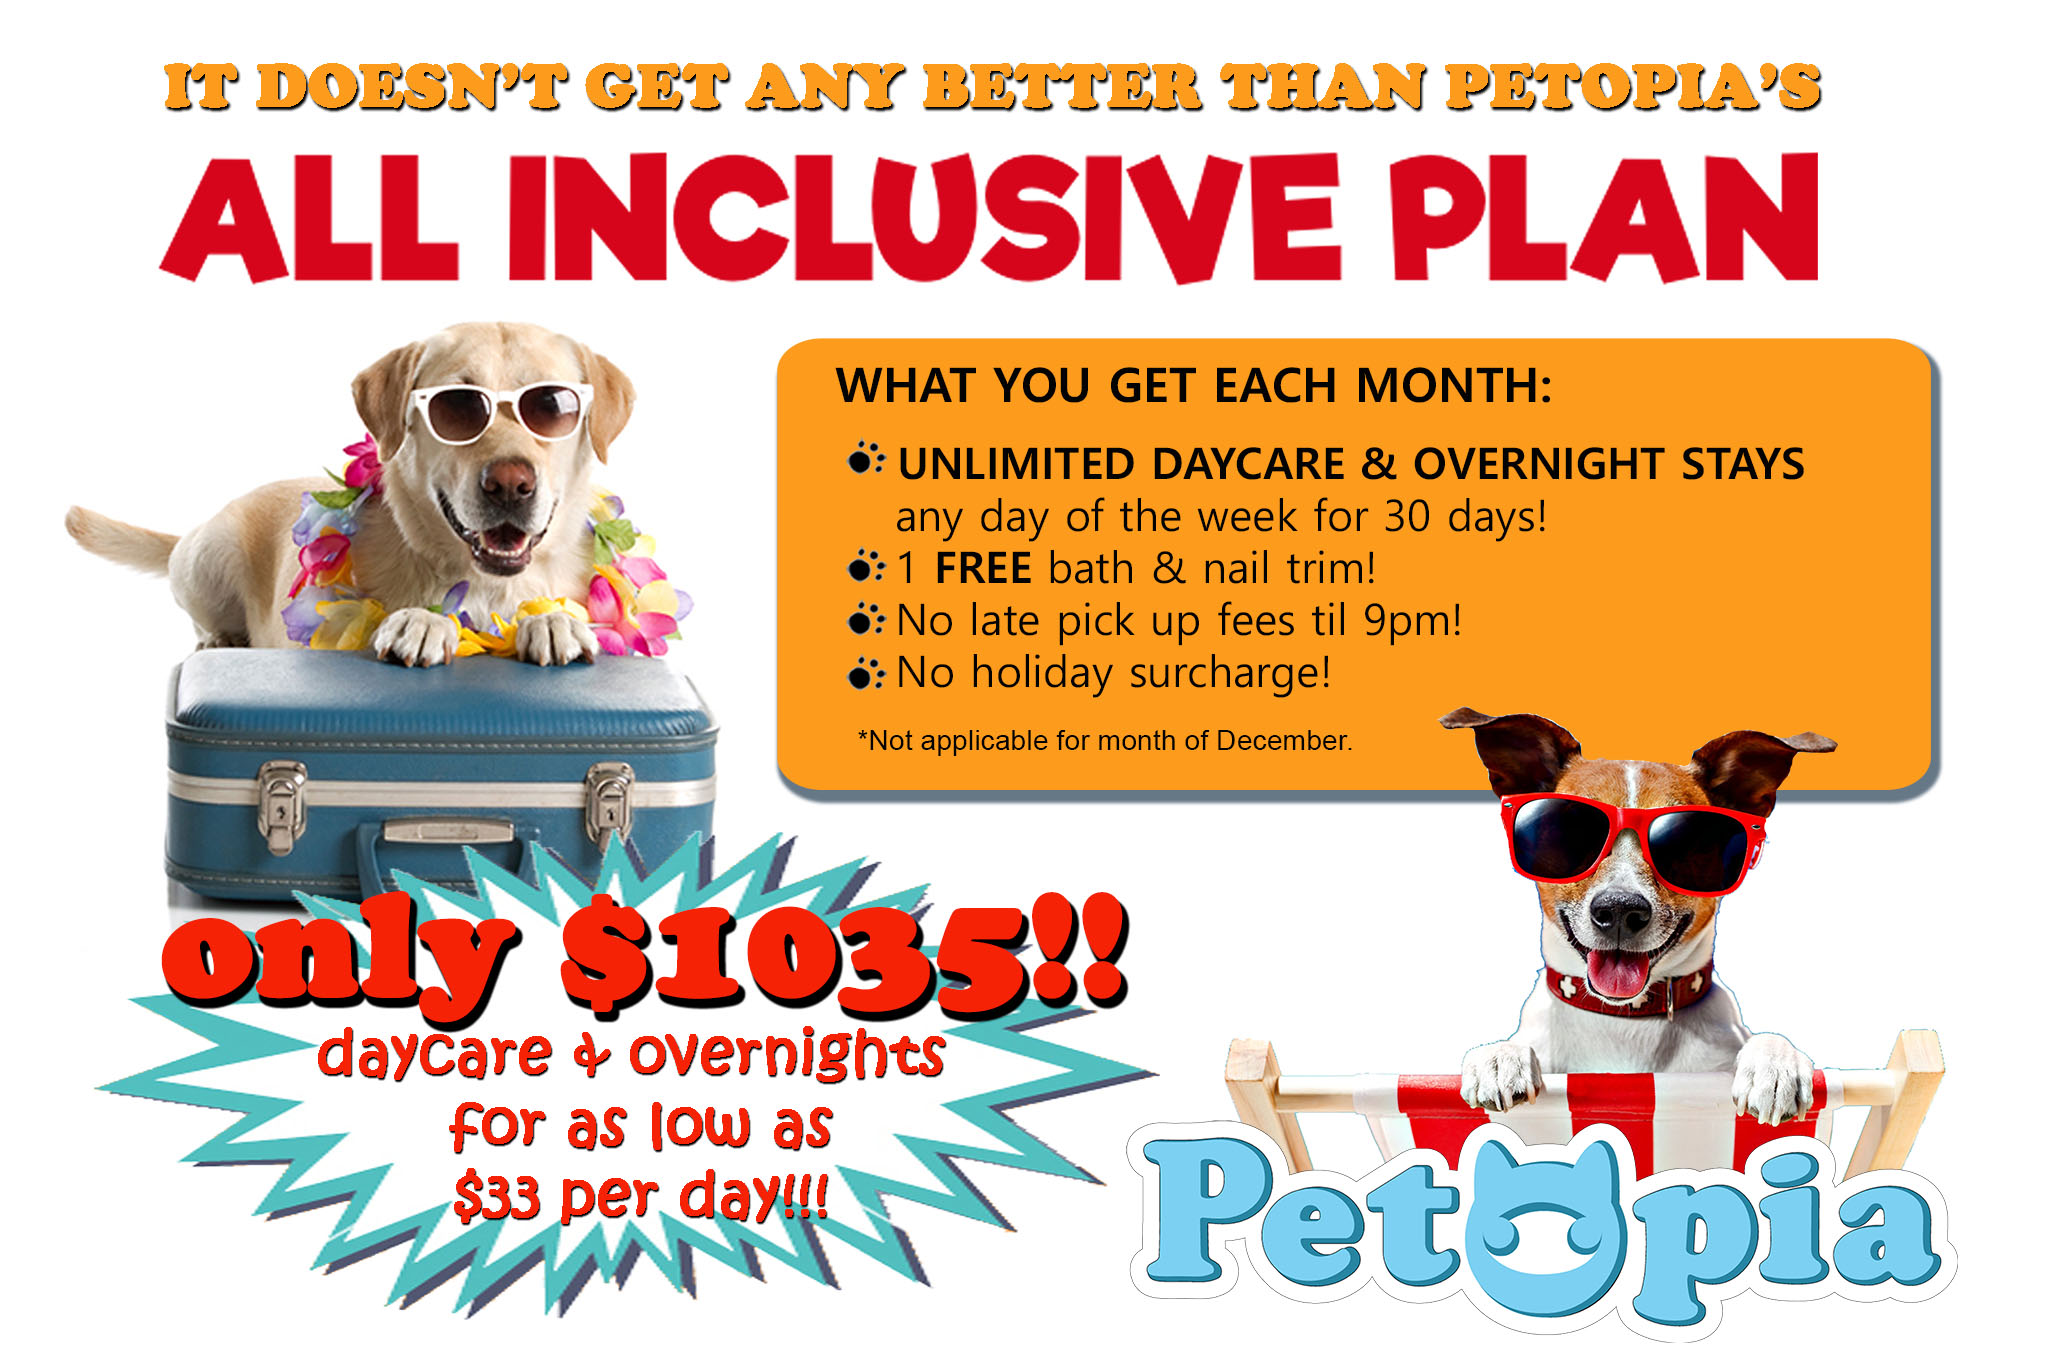 Petopia - Toronto's Best Dog Daycare and Overnight Care